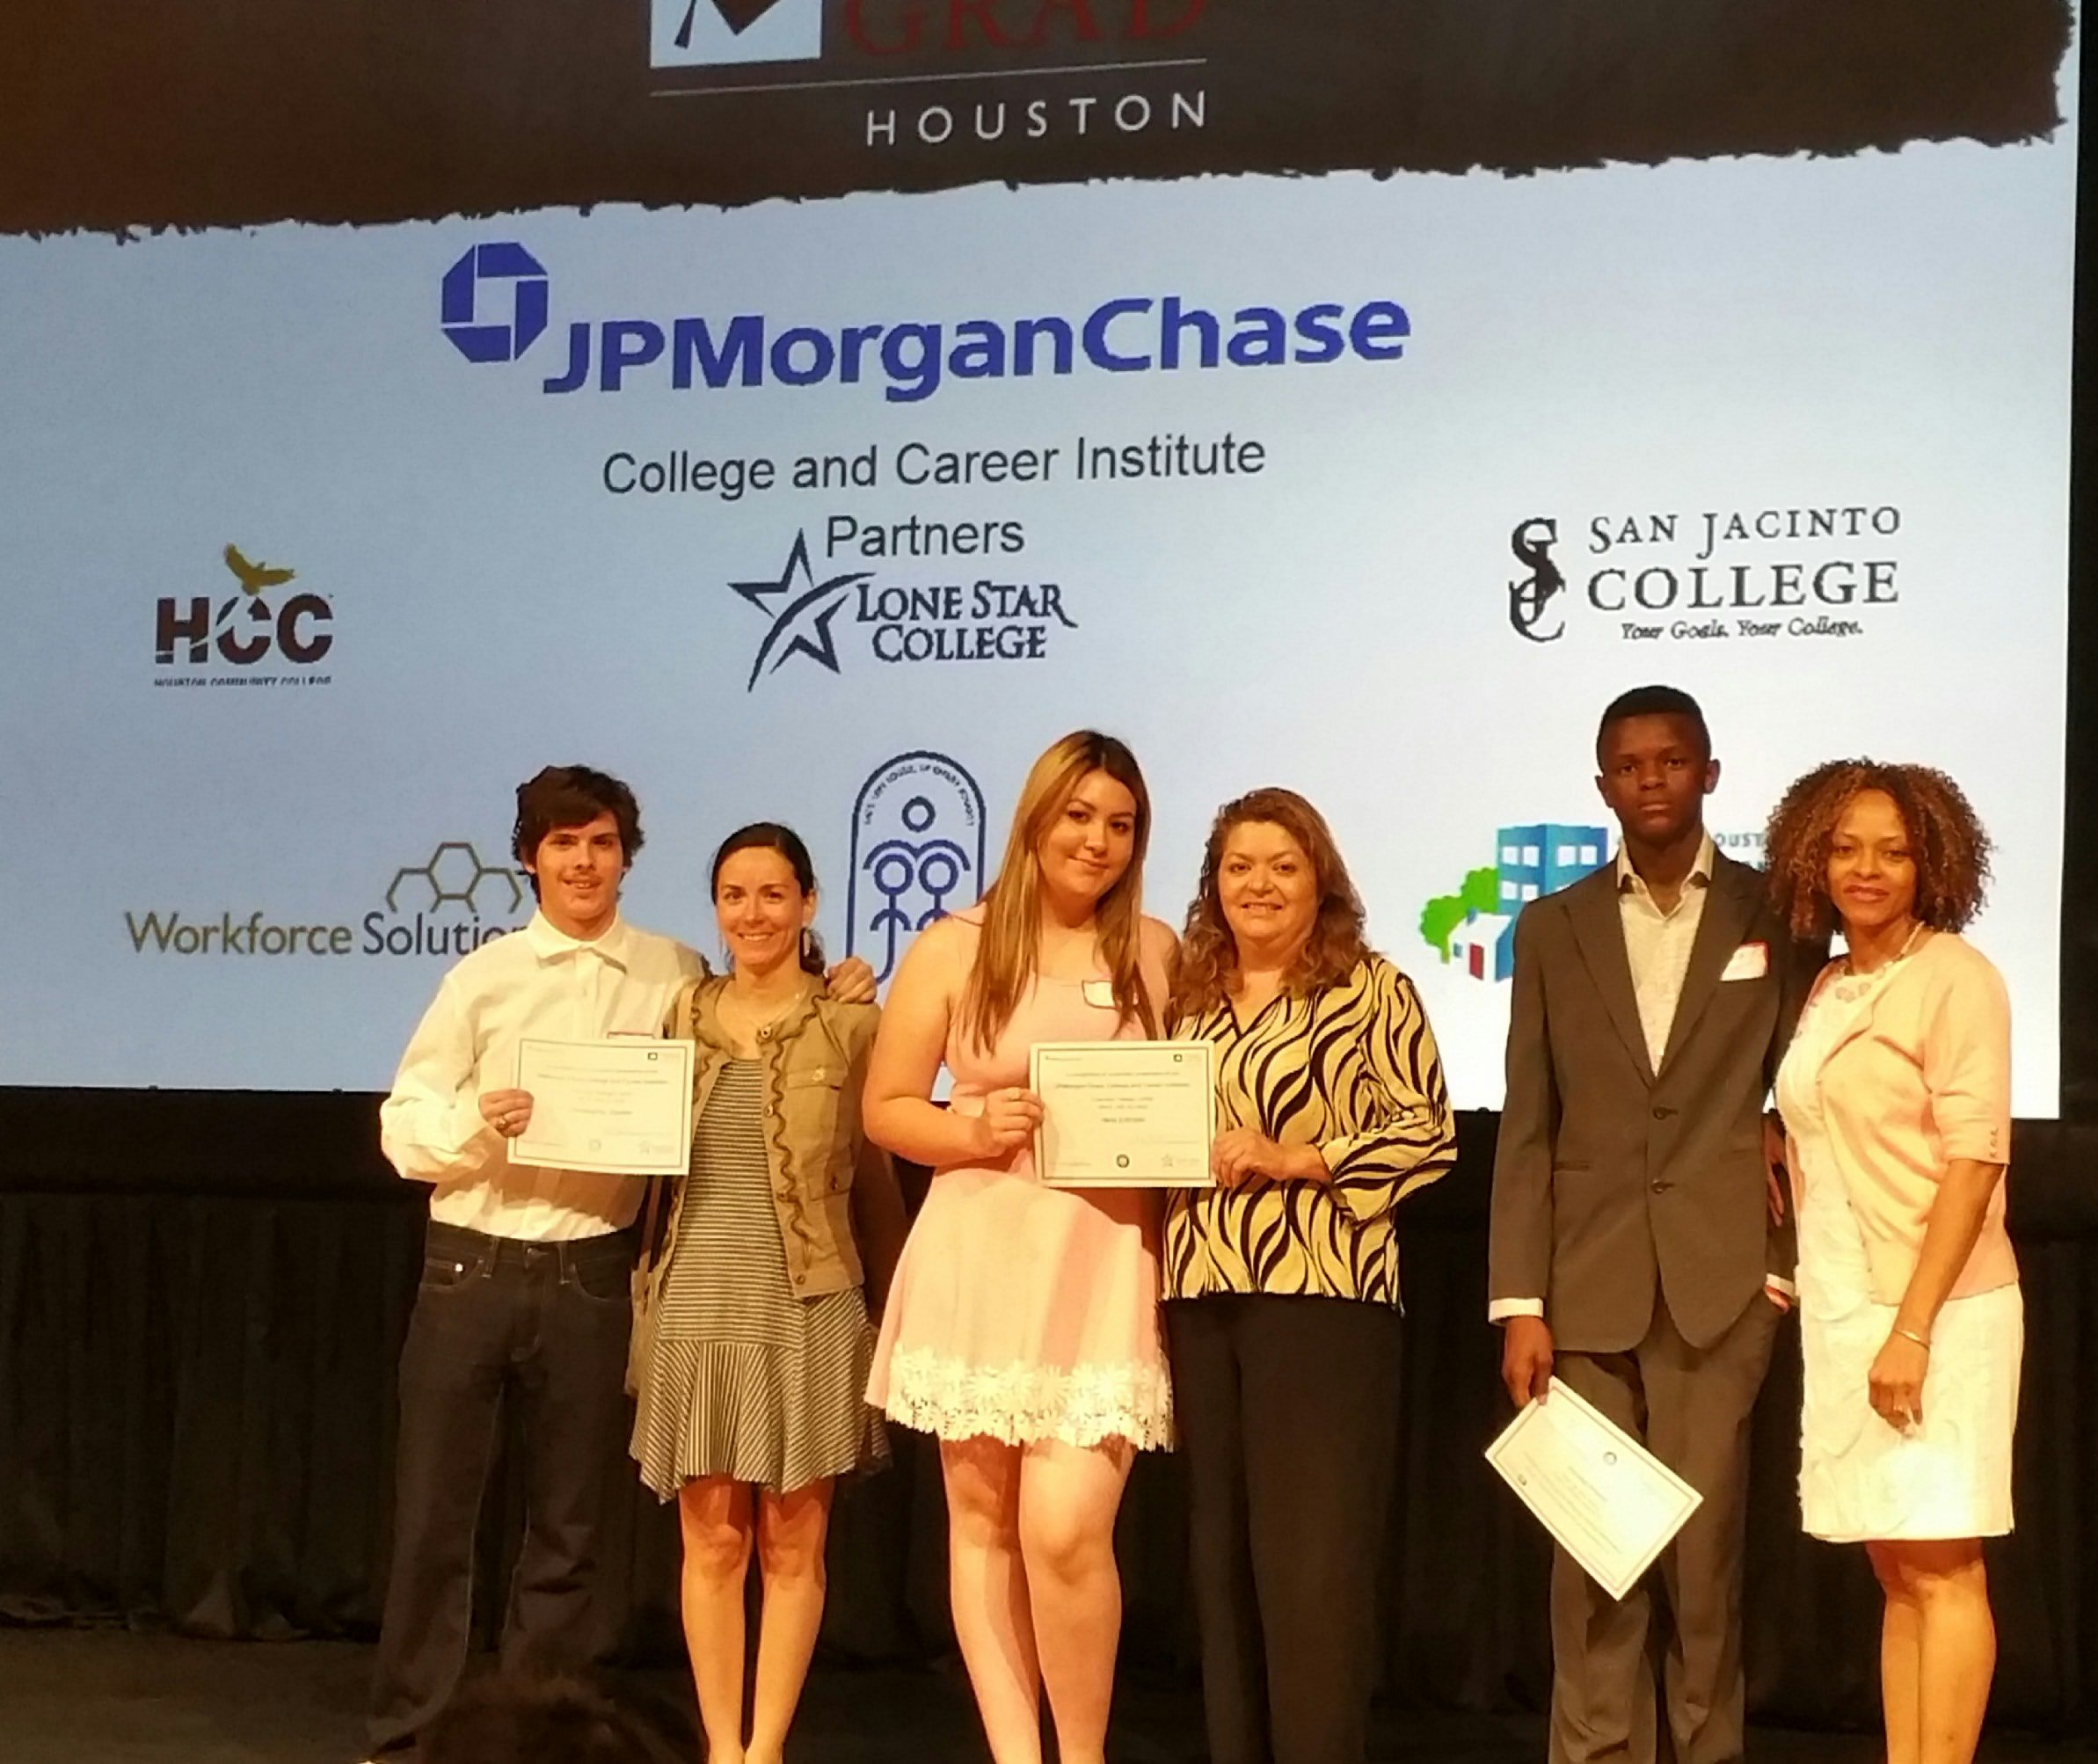 Last Night At The Jpmorgan Chase College And Career Institute Lone Star College Cyfair Closing Ceremony Three Cypress Lake High School Ninth Grade Hcc College